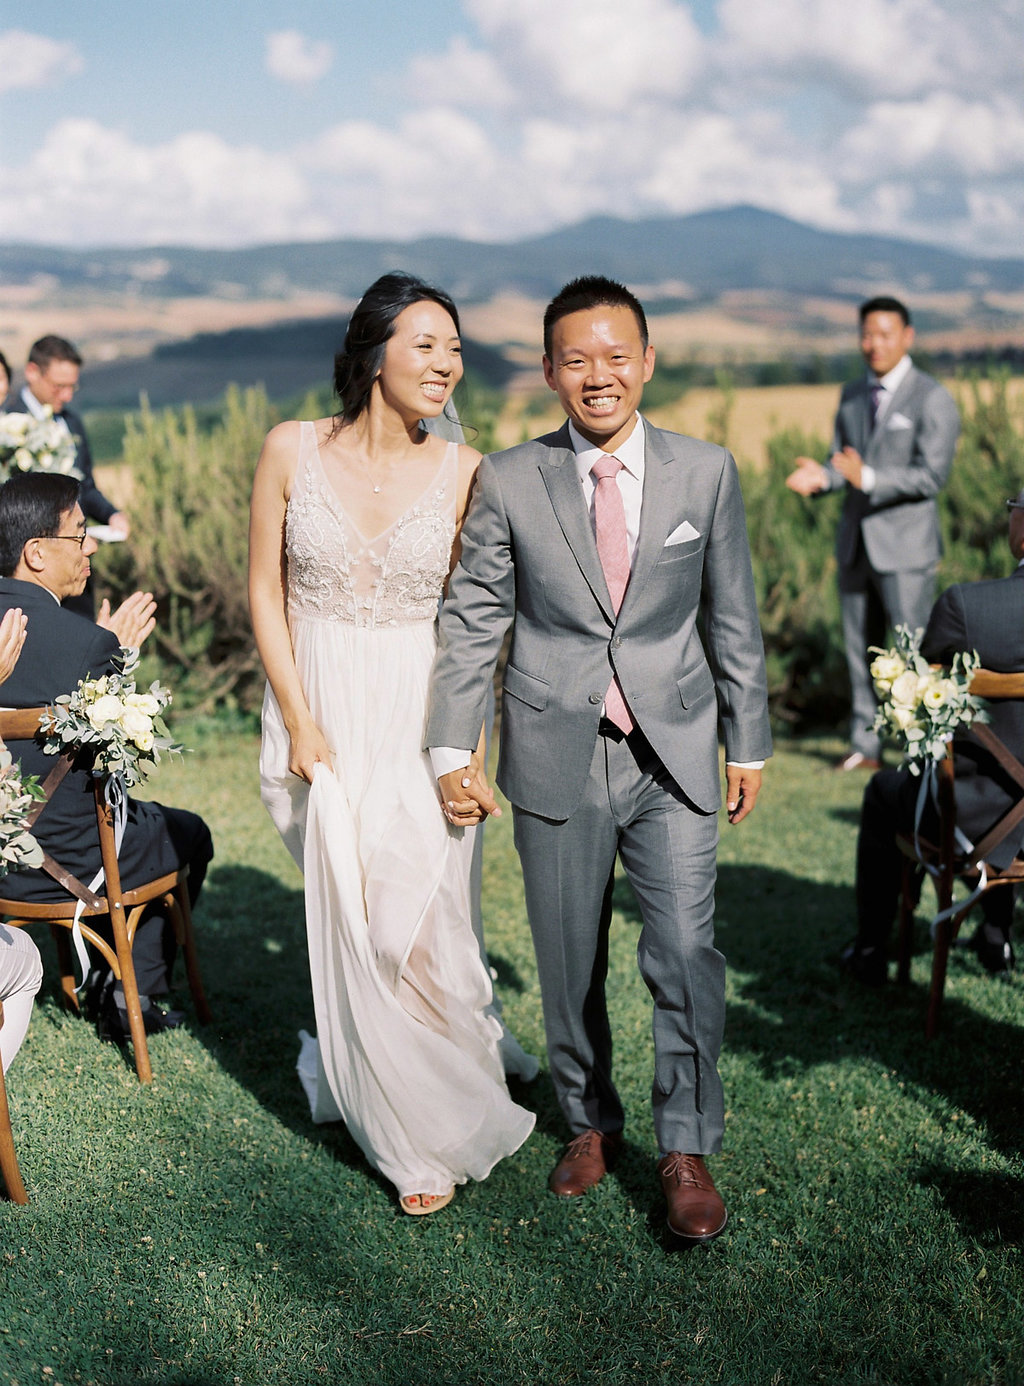 ceremony recessionals - photo by Katie Grant Photography https://ruffledblog.com/classically-beautiful-intimate-wedding-in-tuscany